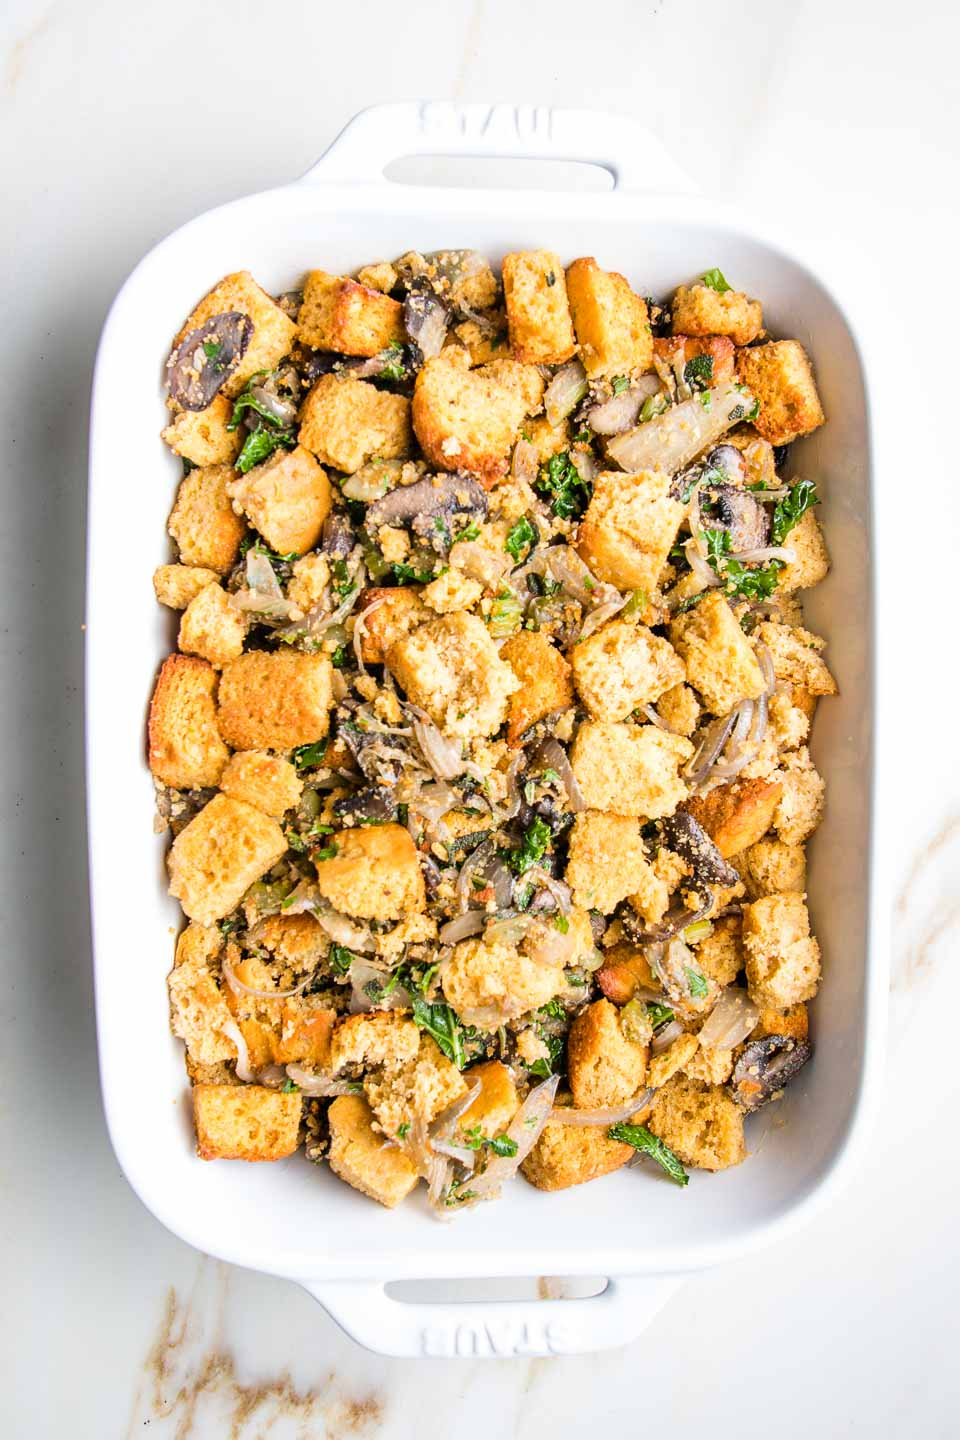 White rectangular baking dish filled with cornbread croutons mixed with sauteed veggies and soaked with veggie stock.